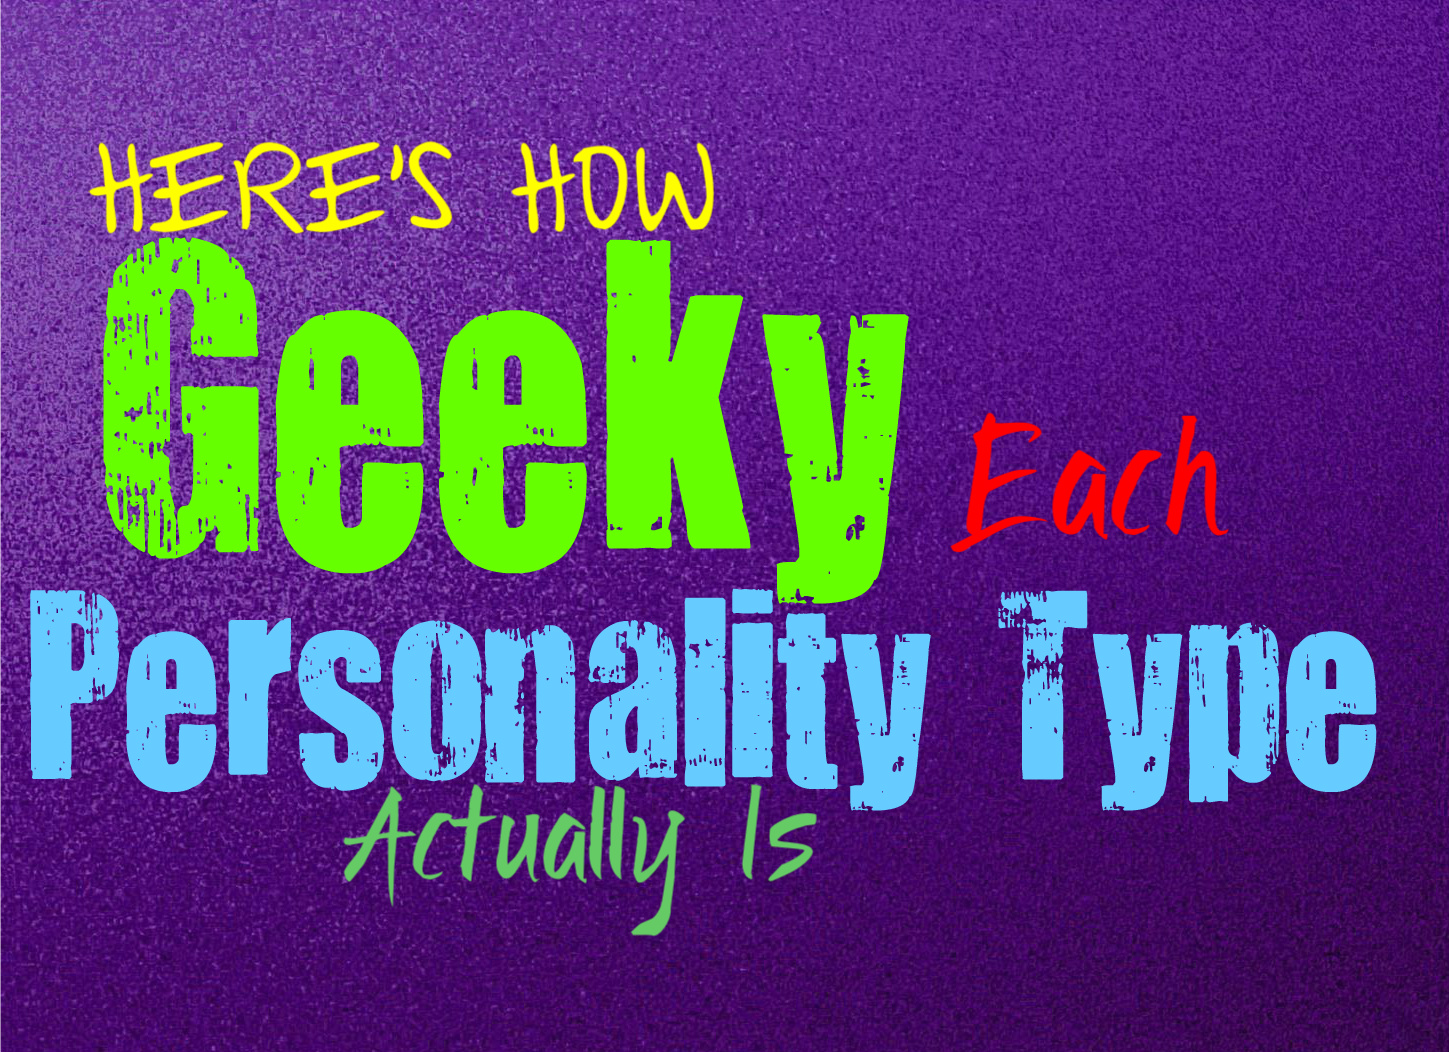 Hereu0027s How Geeky Each Personality Type Is